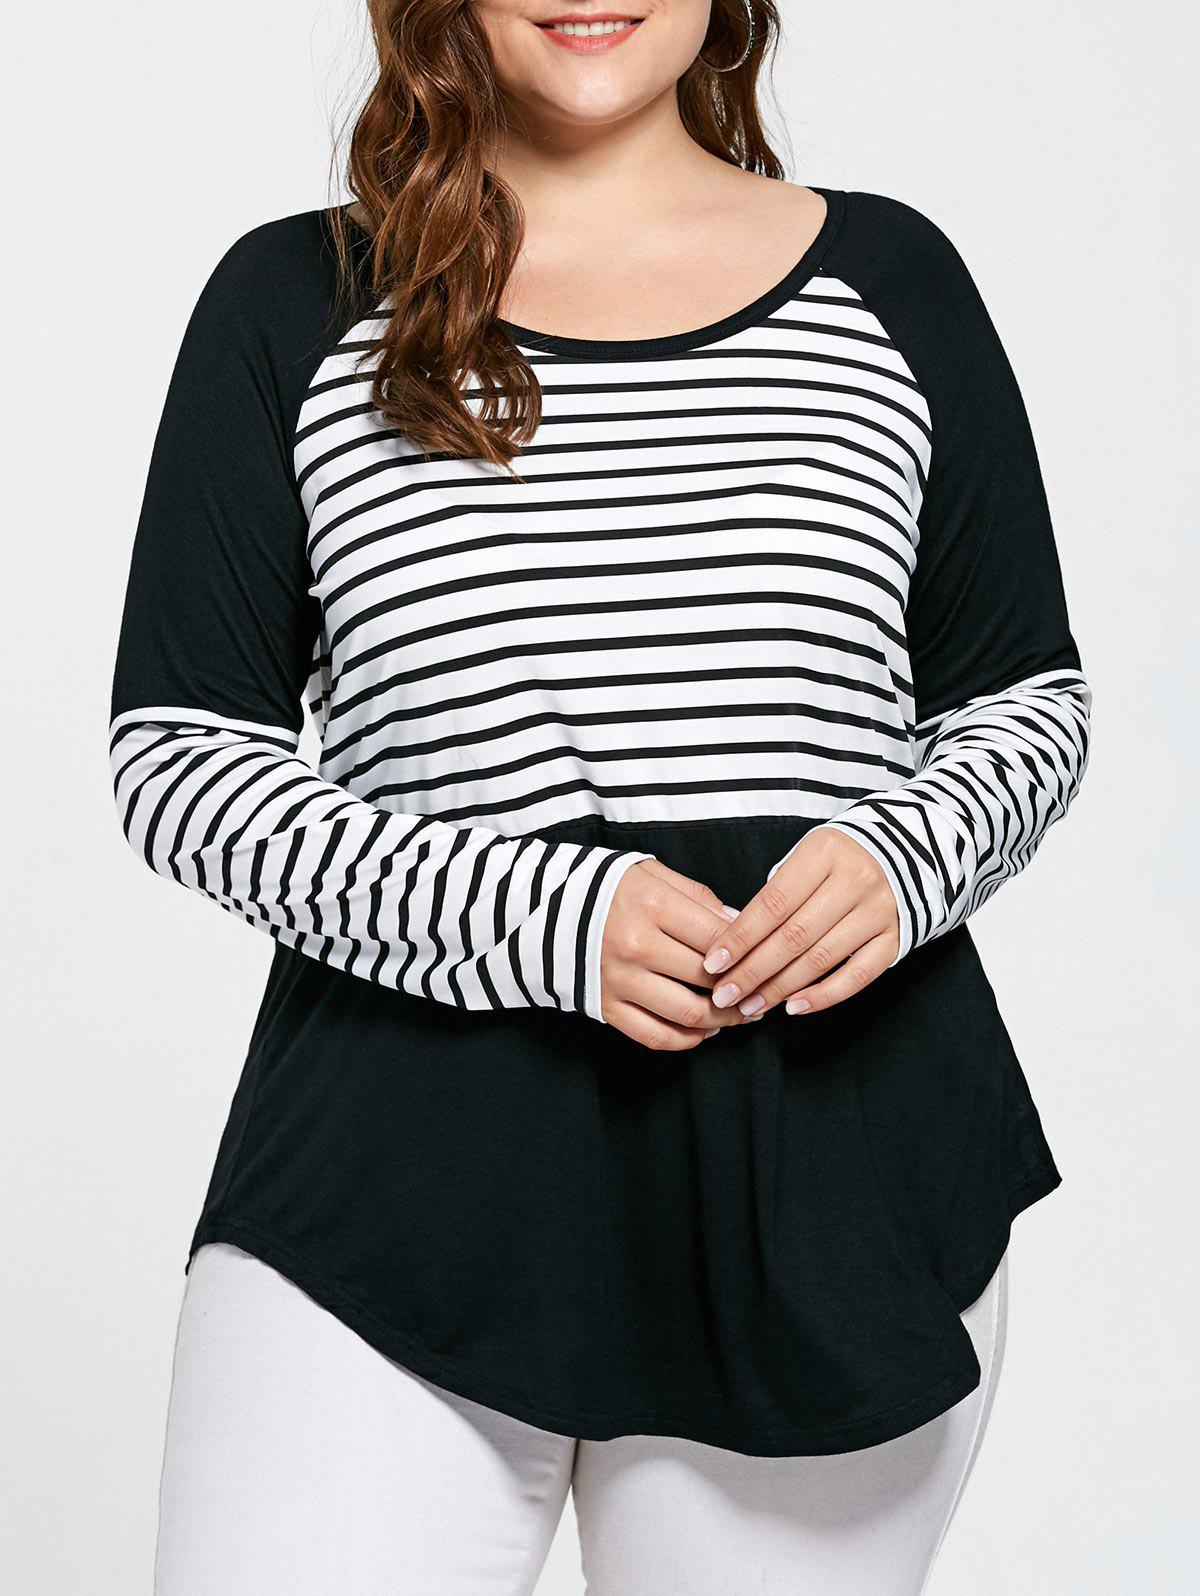 Plus Size Striped Raglan Sleeve TopWOMEN<br><br>Size: 5XL; Color: STRIPE; Material: Cotton,Spandex; Shirt Length: Long; Sleeve Length: Full; Collar: Scoop Neck; Style: Casual; Season: Fall,Spring; Pattern Type: Striped; Weight: 0.3500kg; Package Contents: 1 x T-shirt;